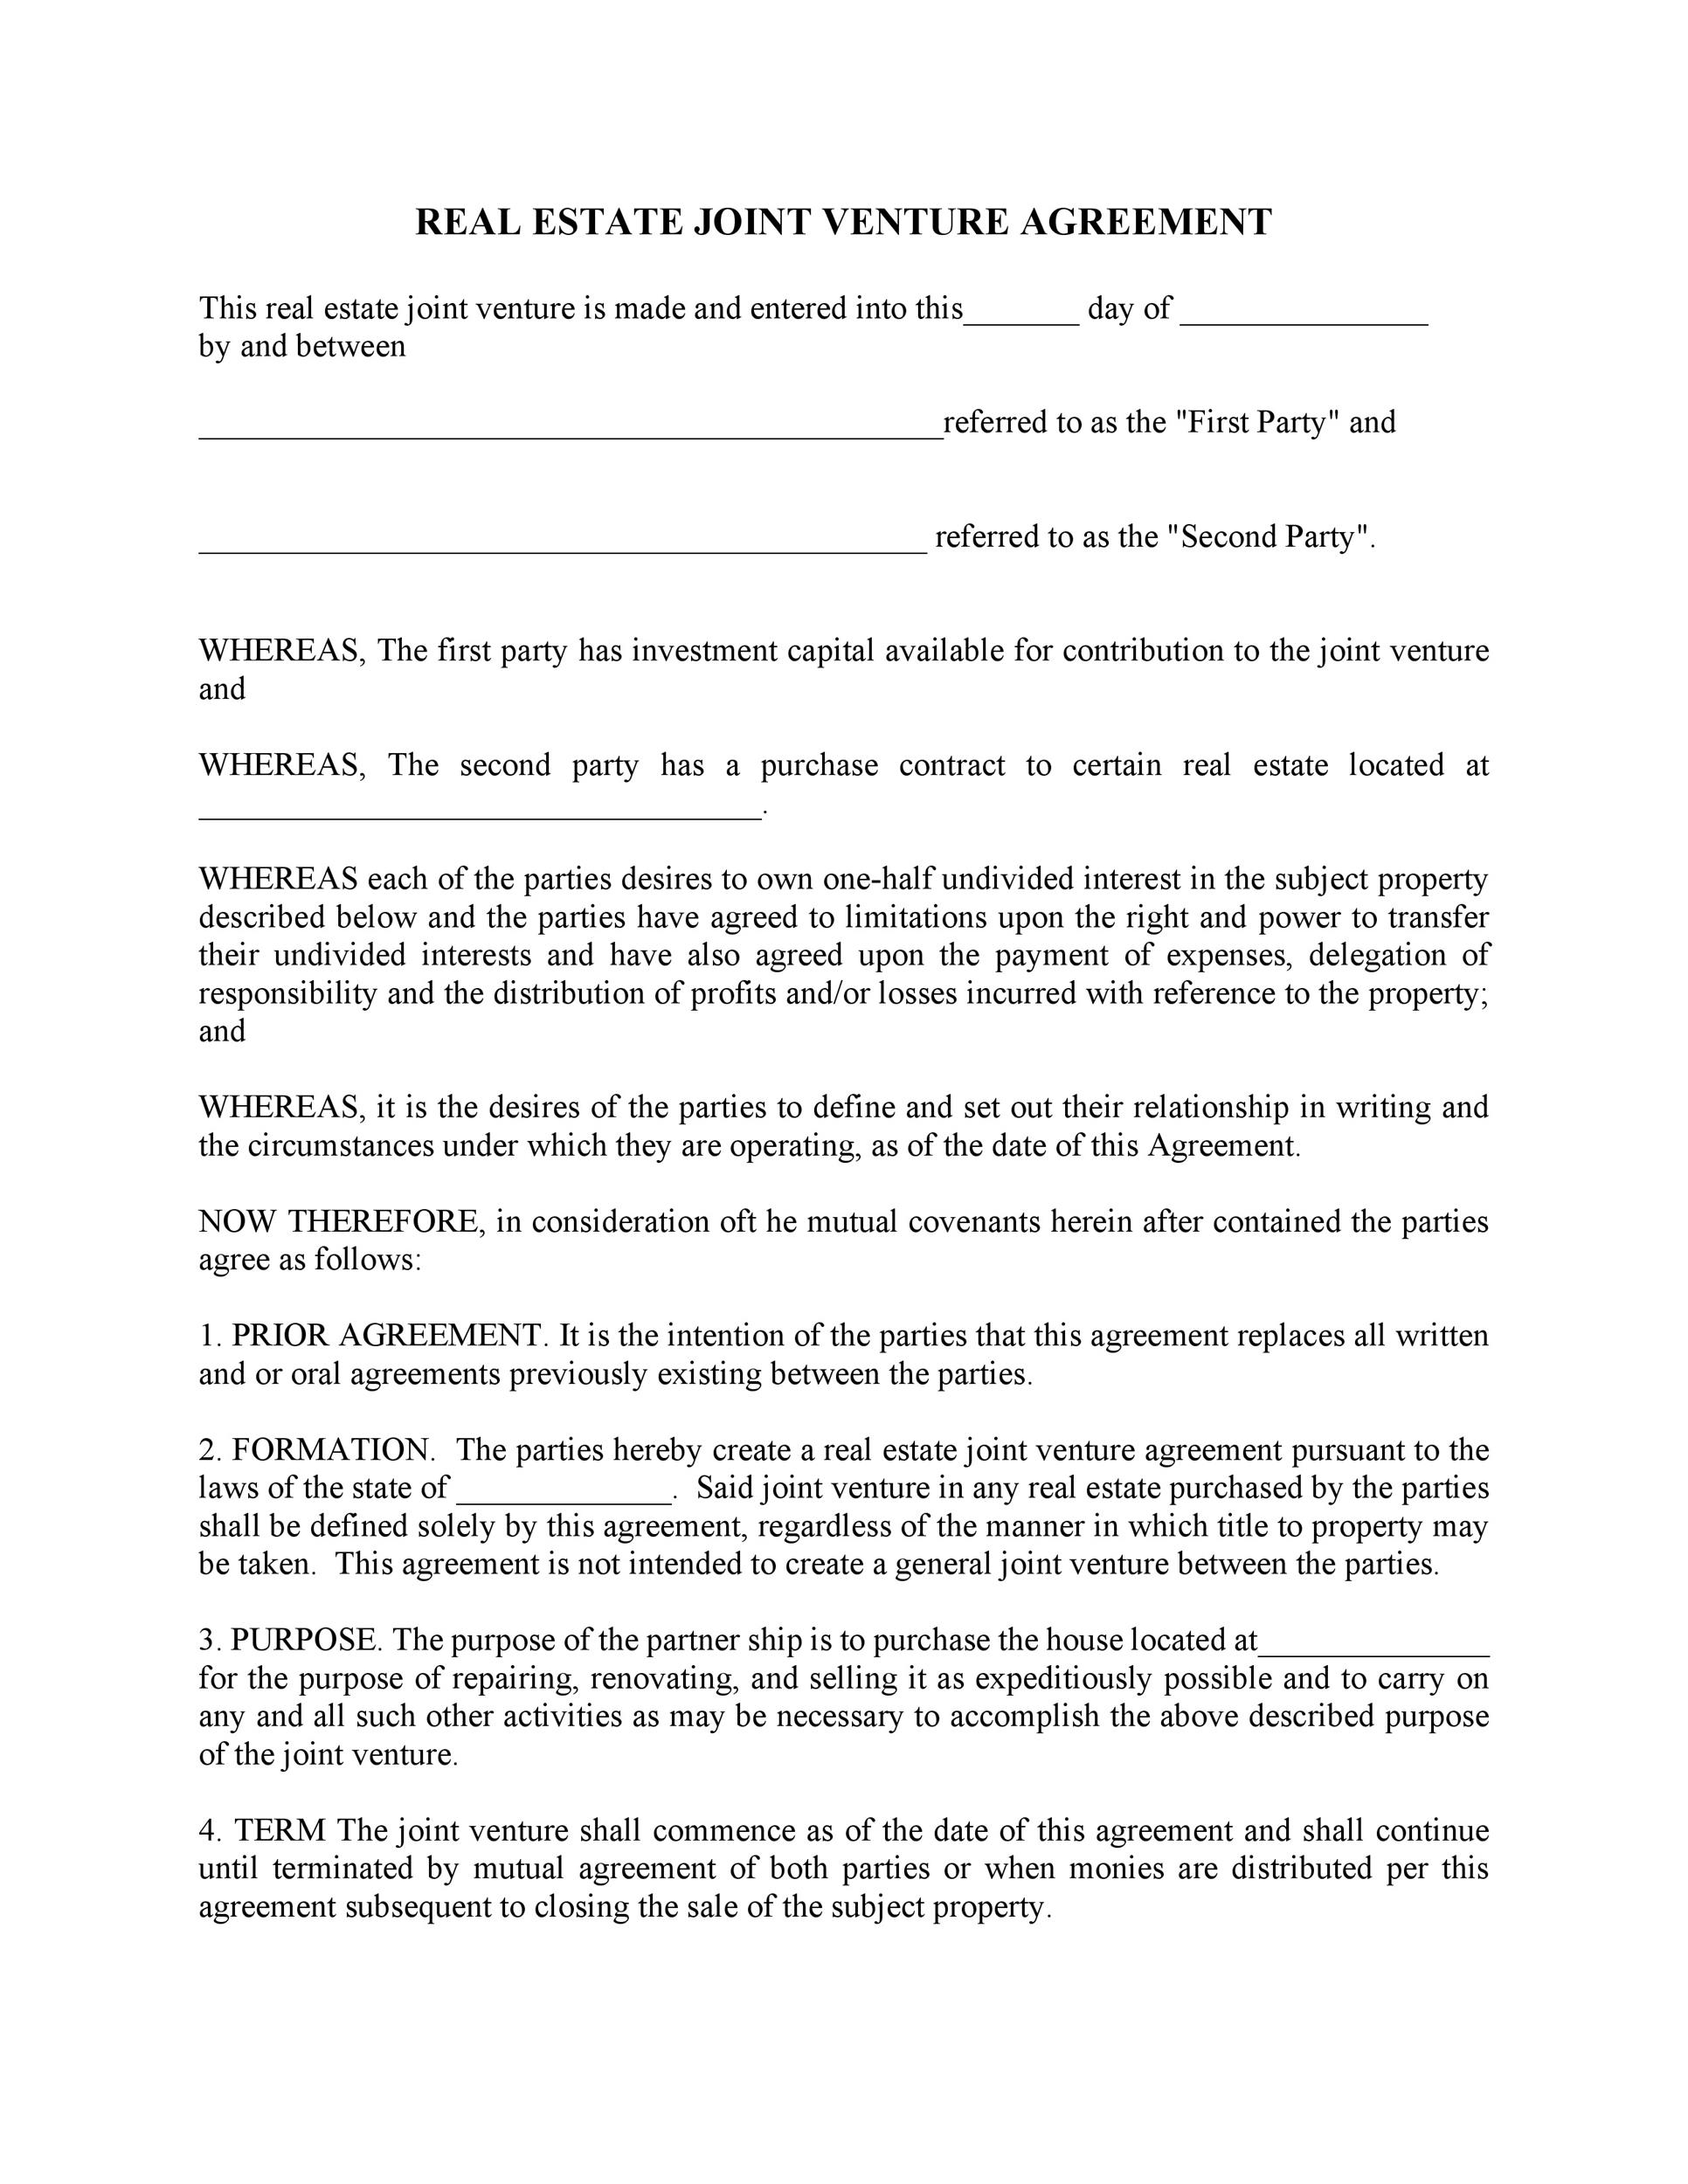 Joint Venture Agreement Template 09